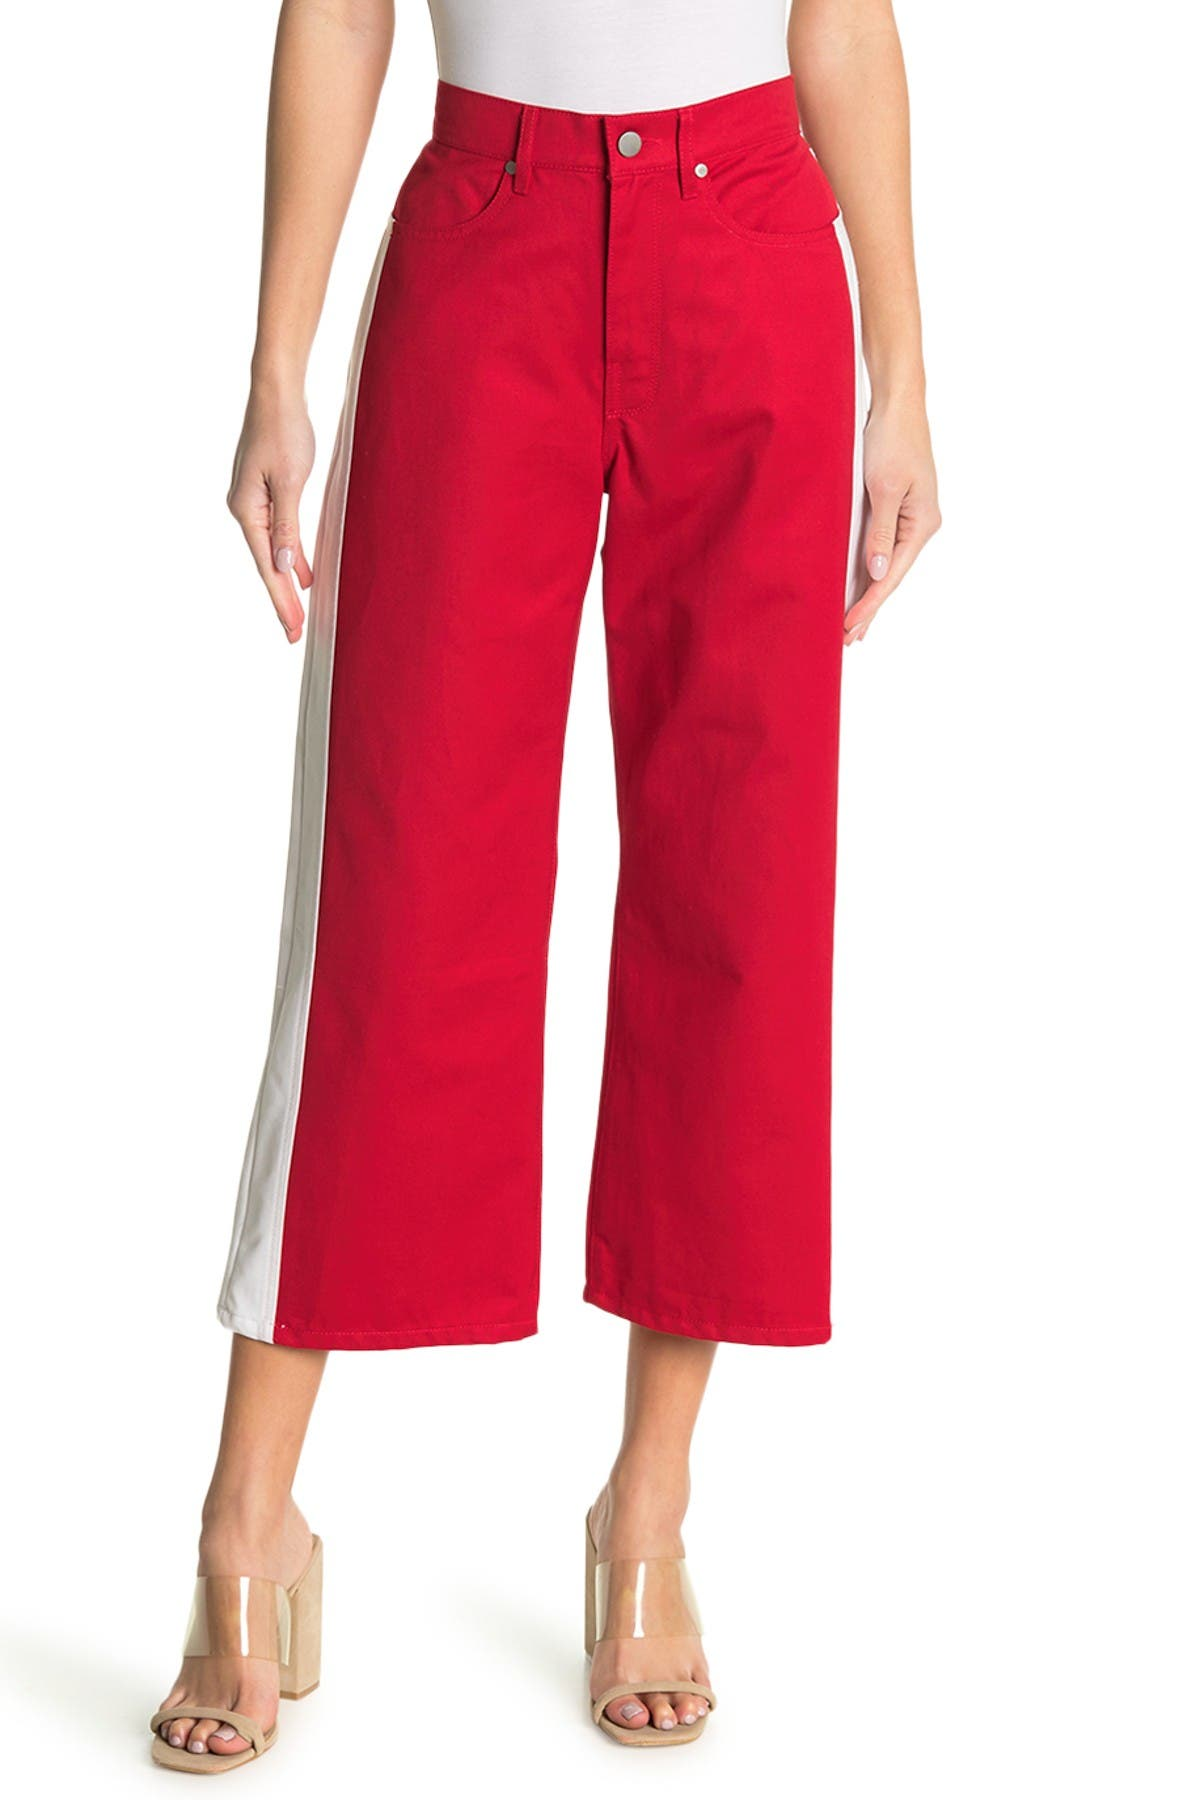 Image of BALDWIN Cropped Wide Leg Side Stripe Jeans